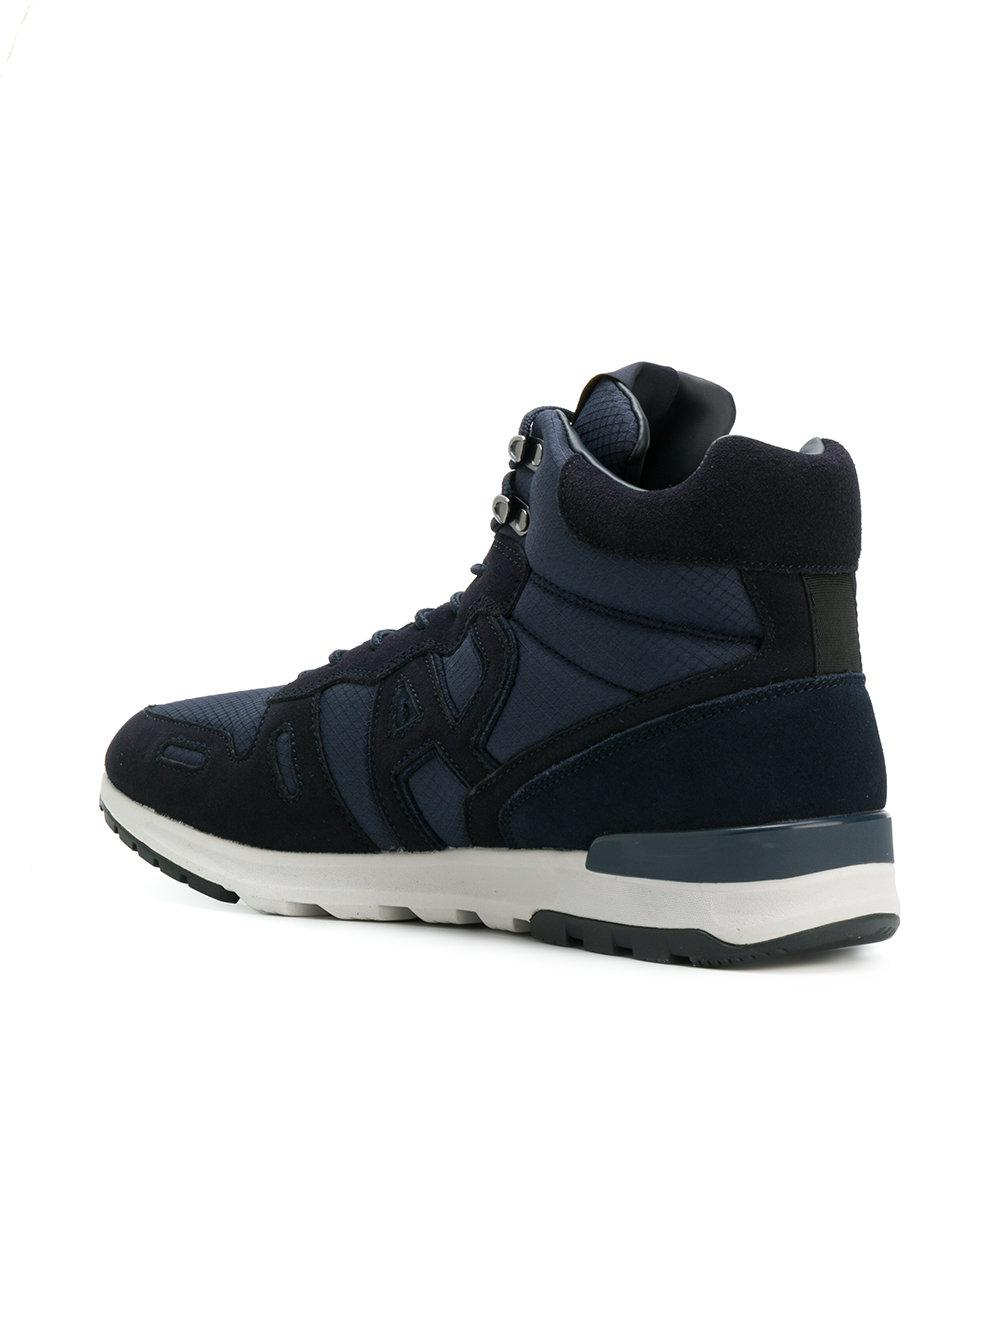 cheap sale collections choice for sale Armani Jeans contrast hi-top sneakers fashion Style cheap price free shipping fashion Style ih9HRN